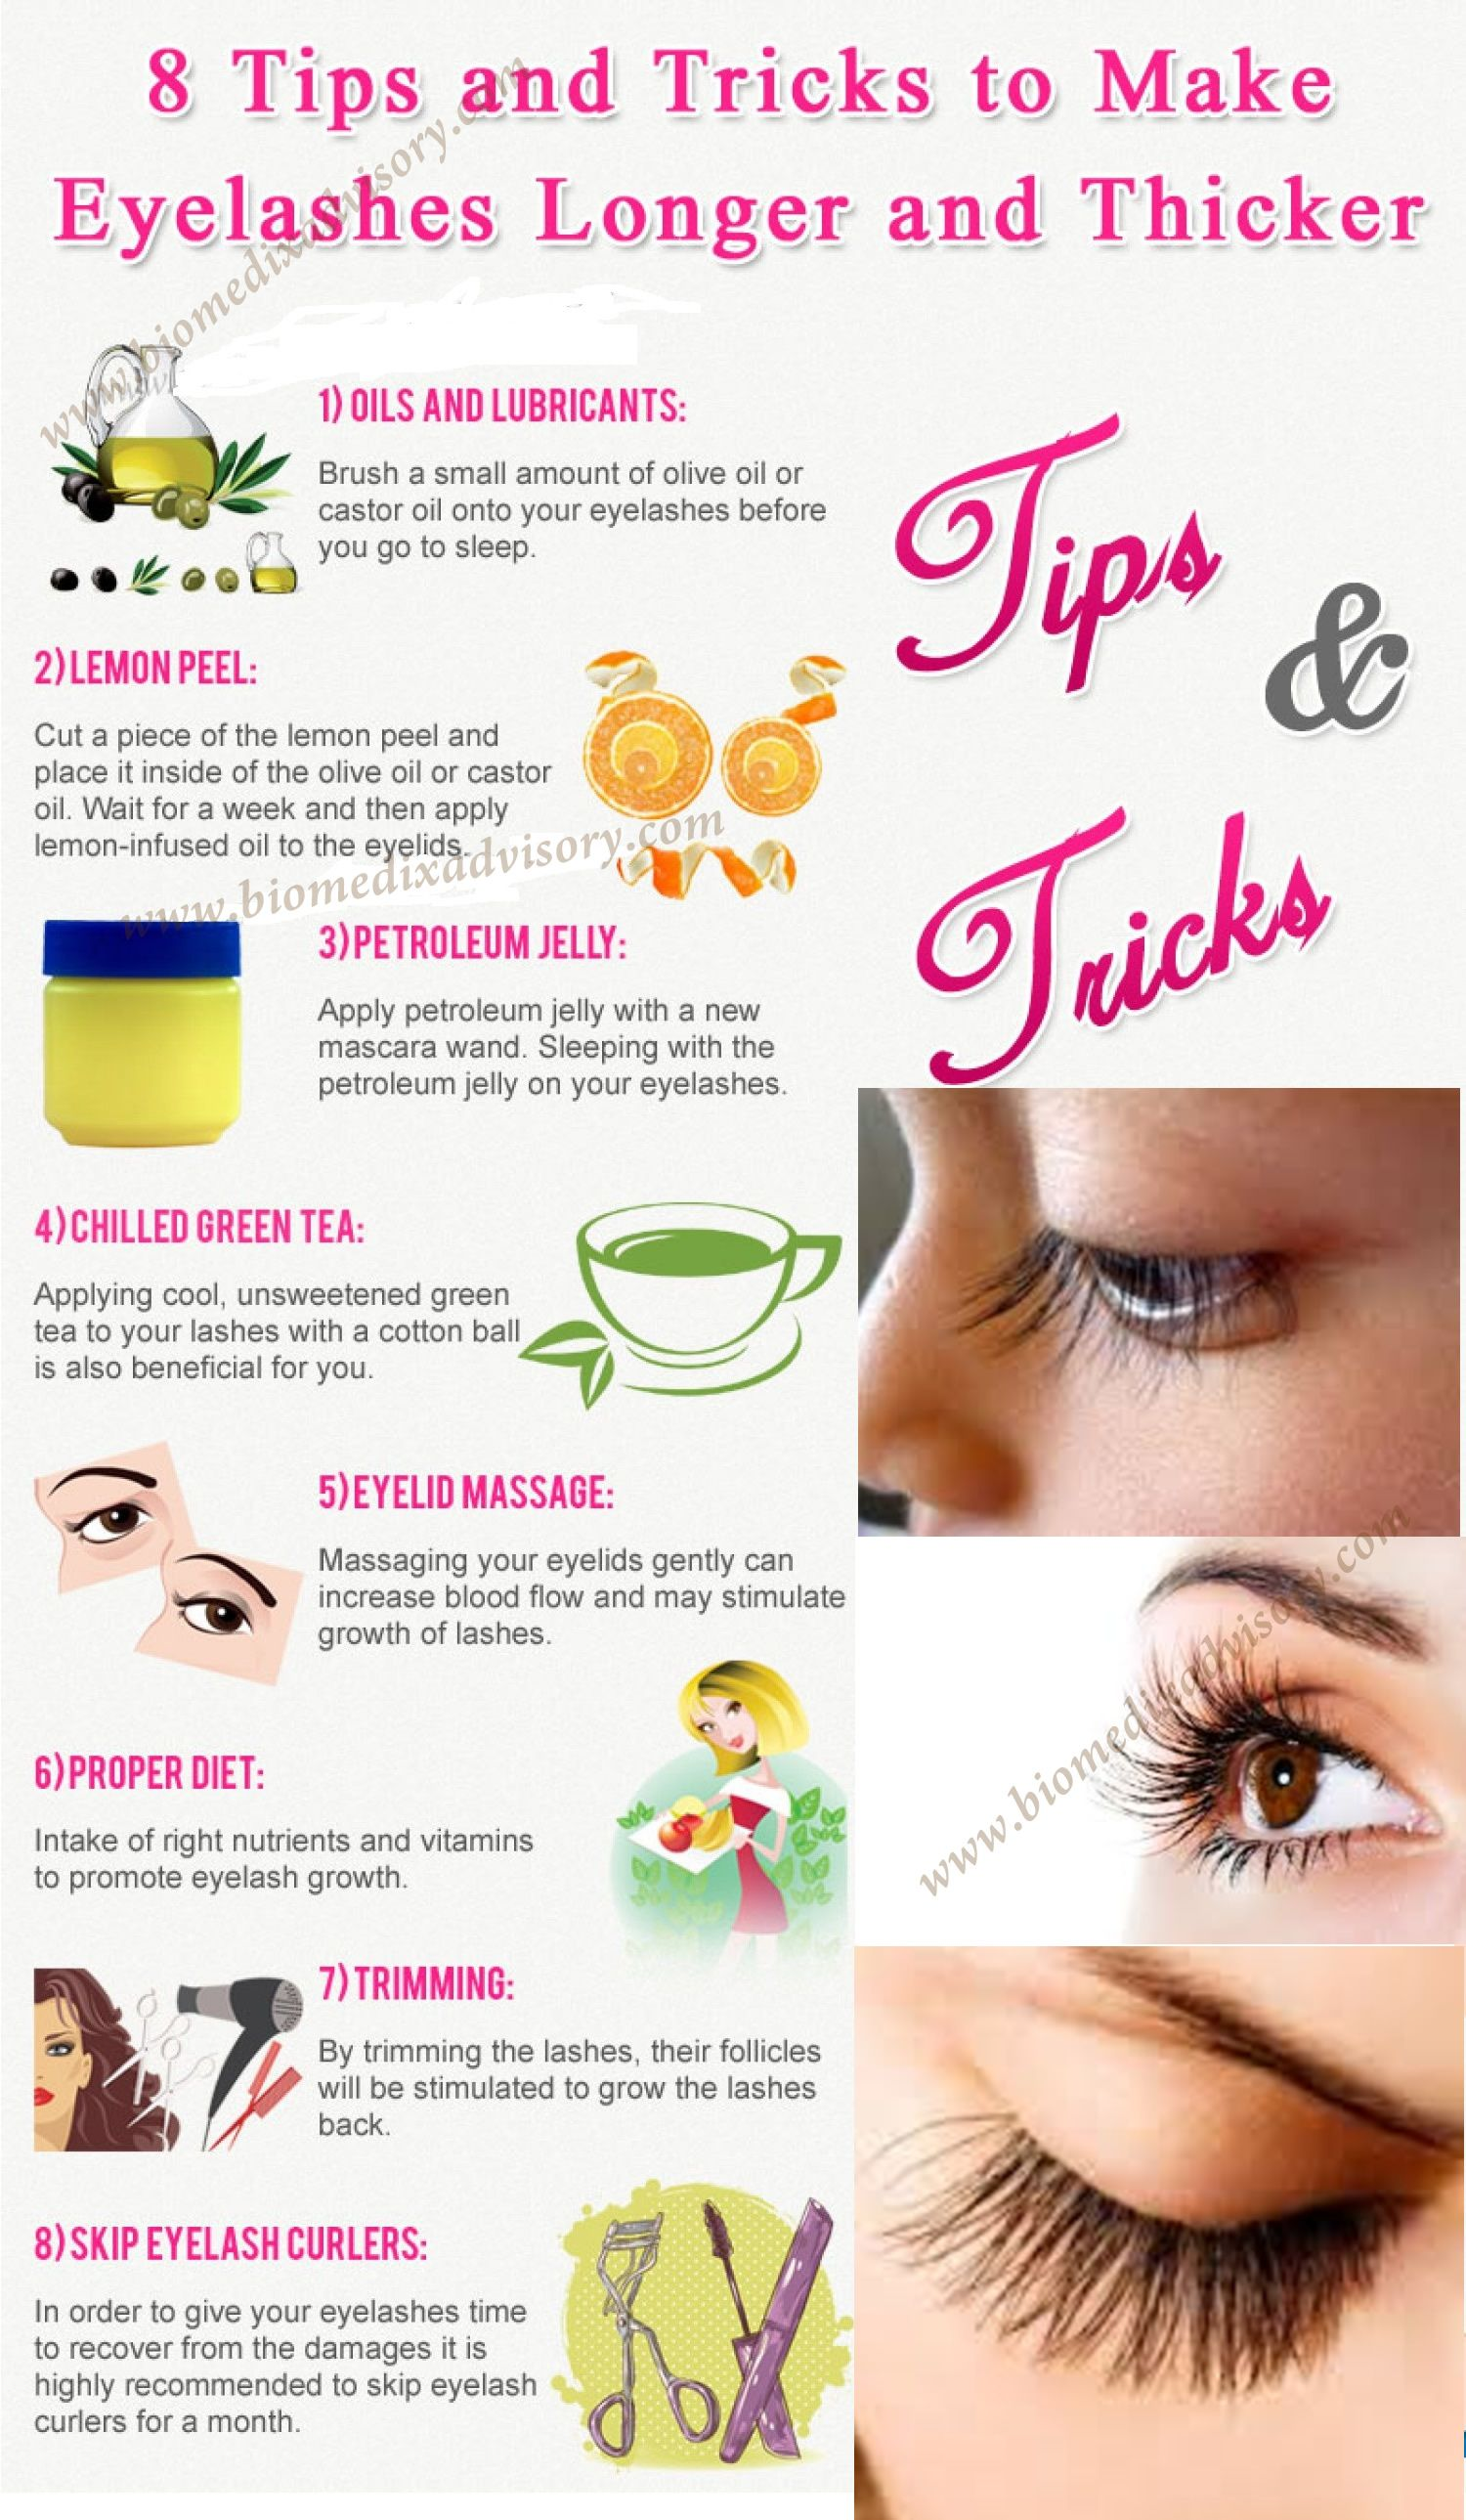 Eight Tips And Tricks To Make Eyelashes Longer And Thicker.  How